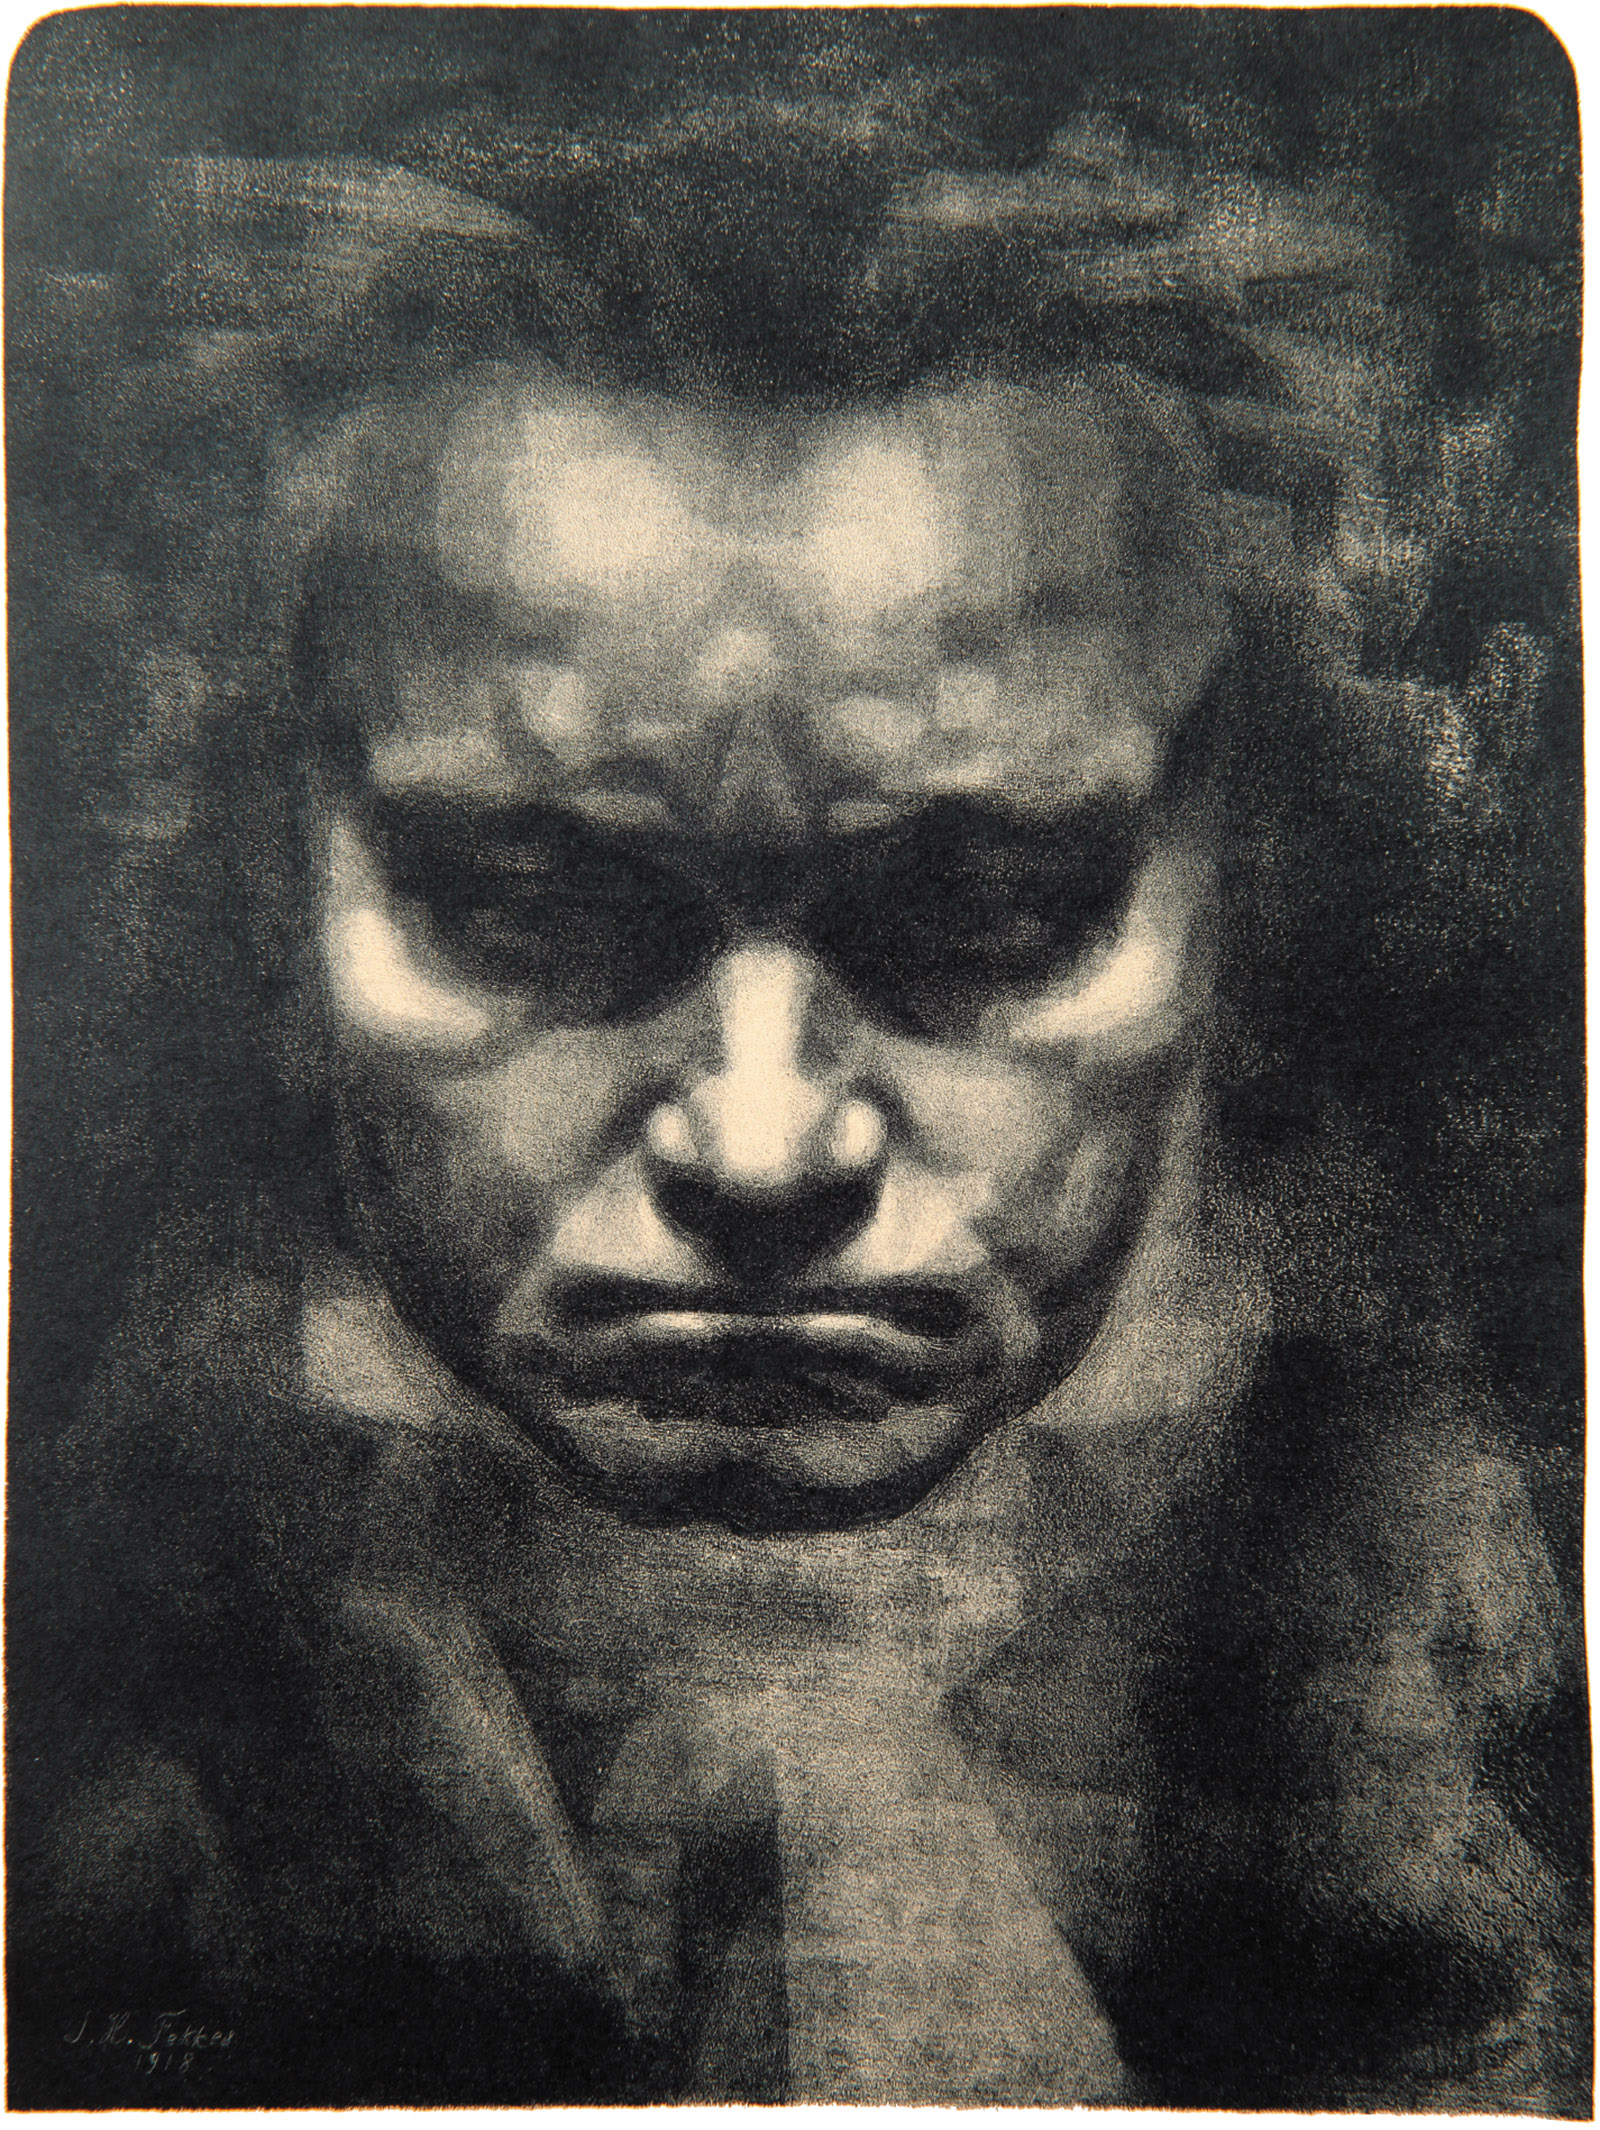 'Head of Beethoven'; lithograph by Johannes Hendricus Fekkes, 1918; from The Art of Music, the catalog of a recent exhibition at the San Diego Museum of Art, published by Yale University Press